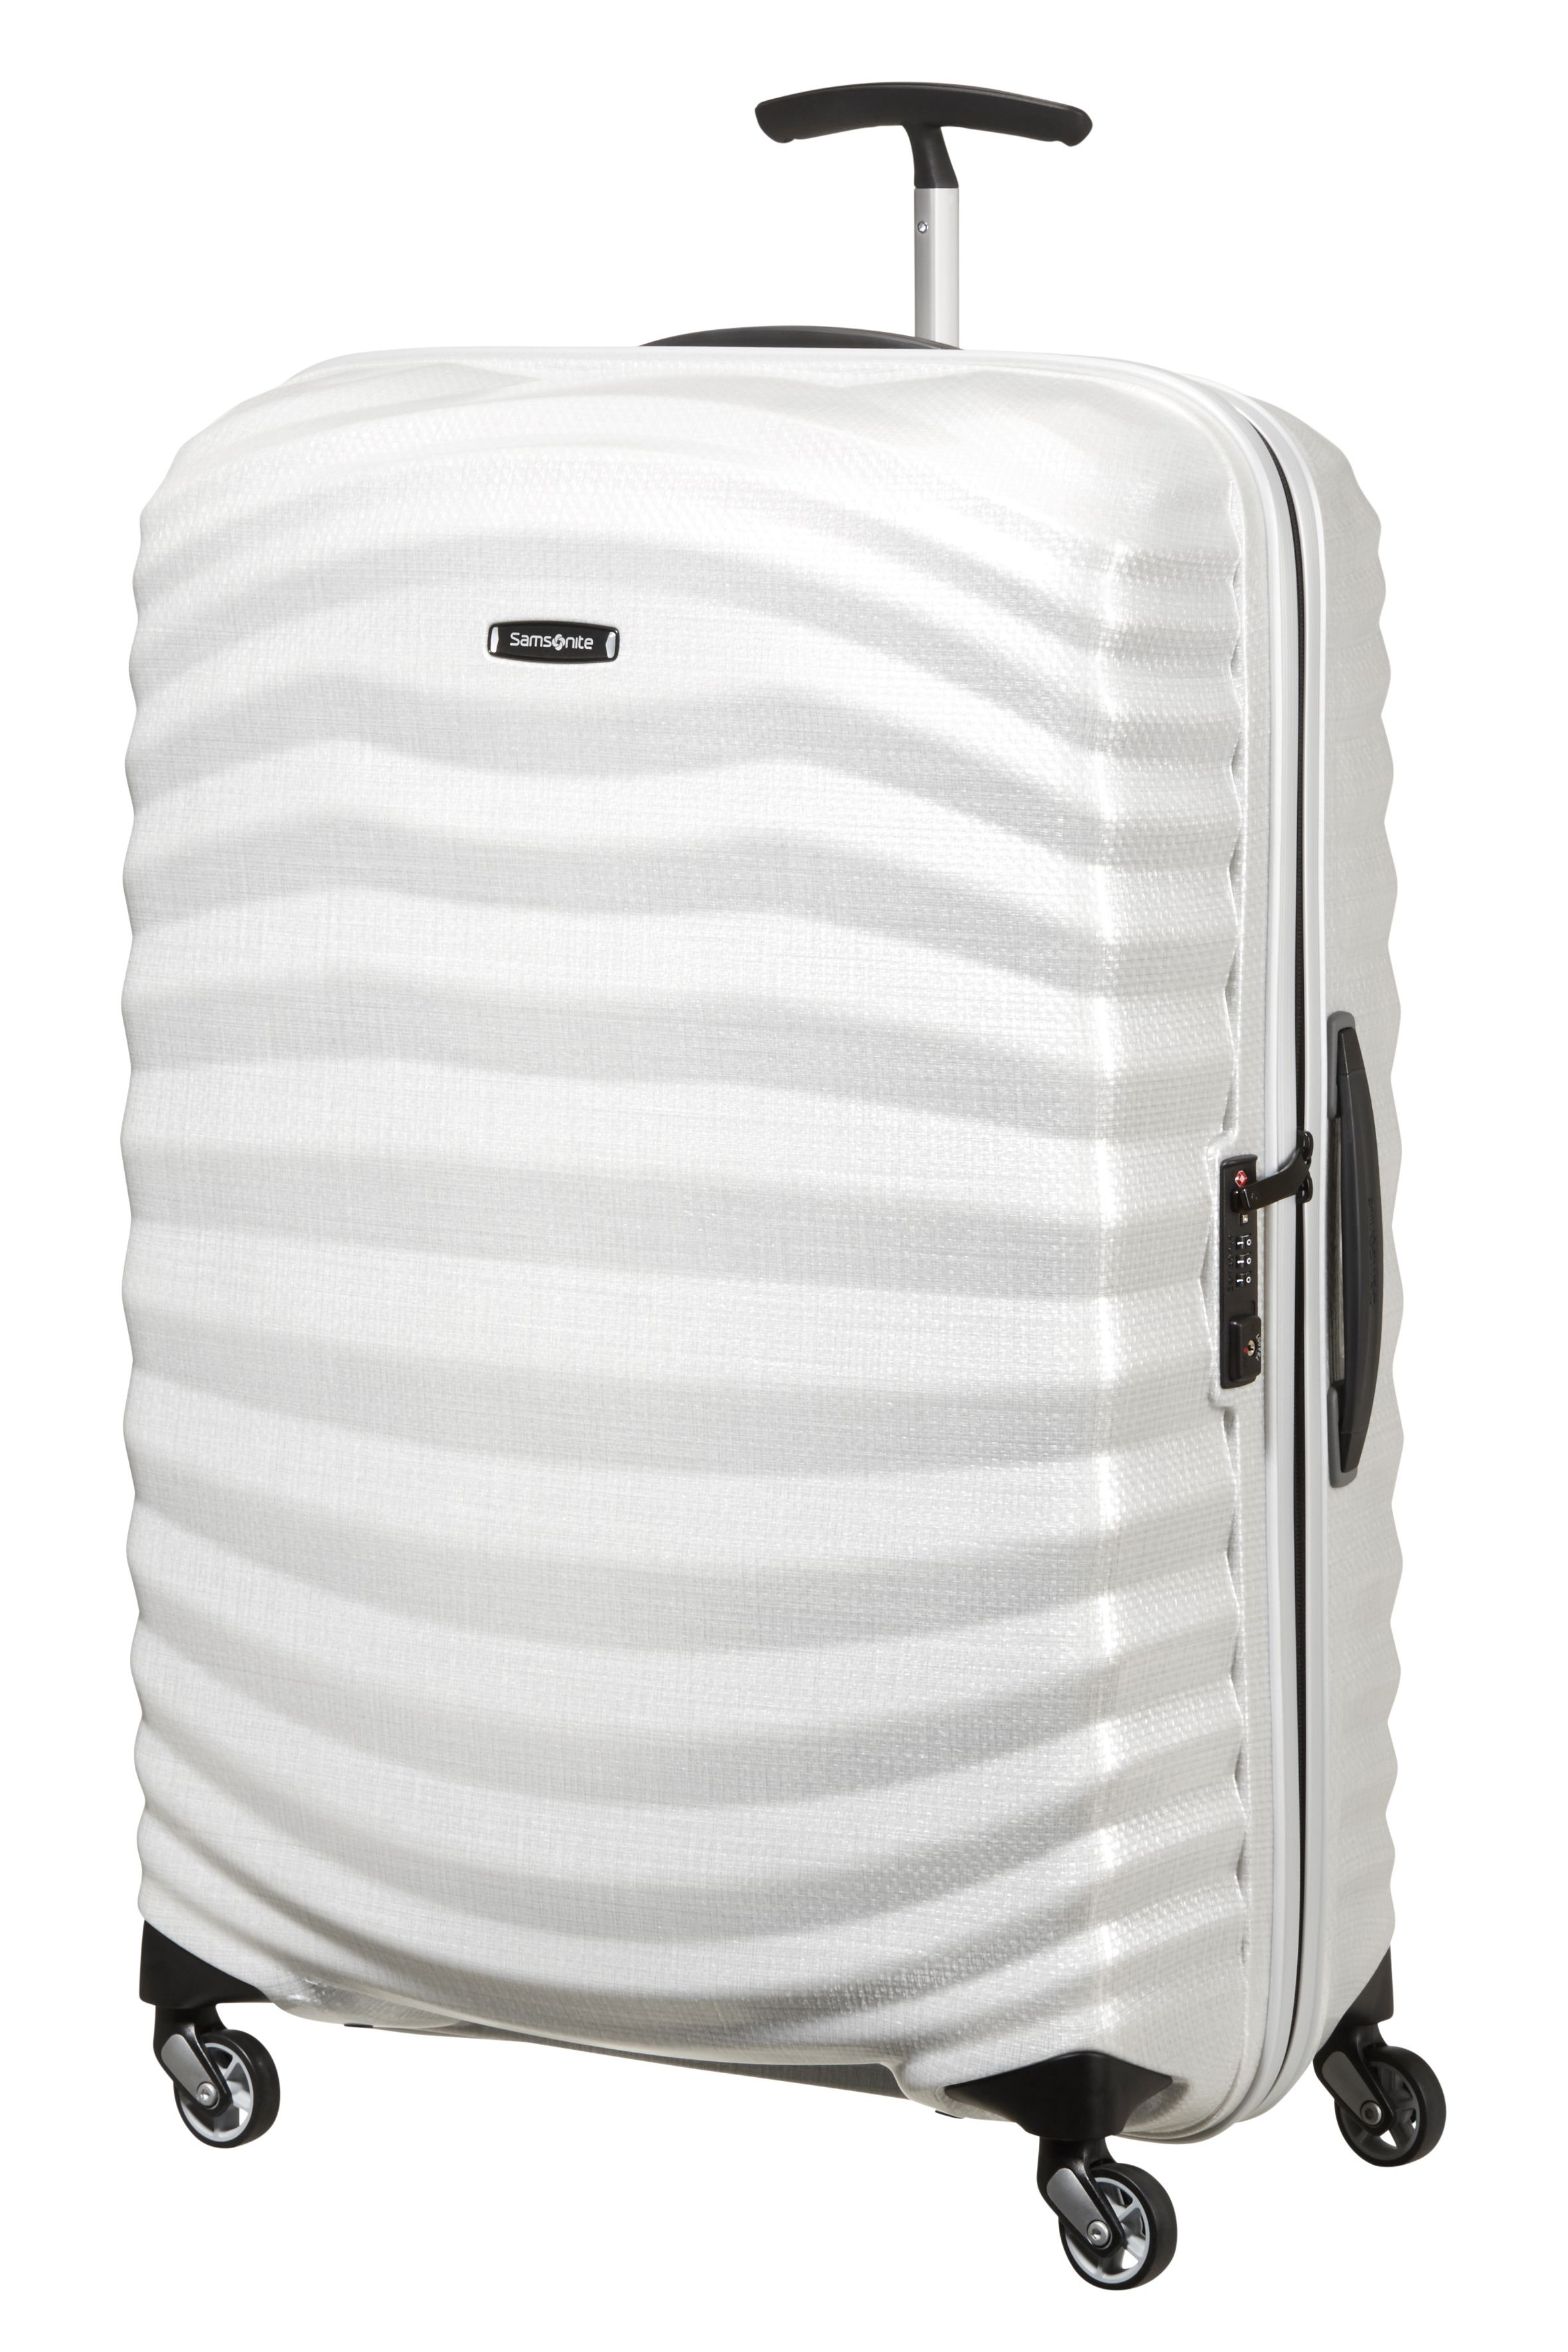 Samsonite LiteShock off white 4 wheel 75cm medium suitcase Off White